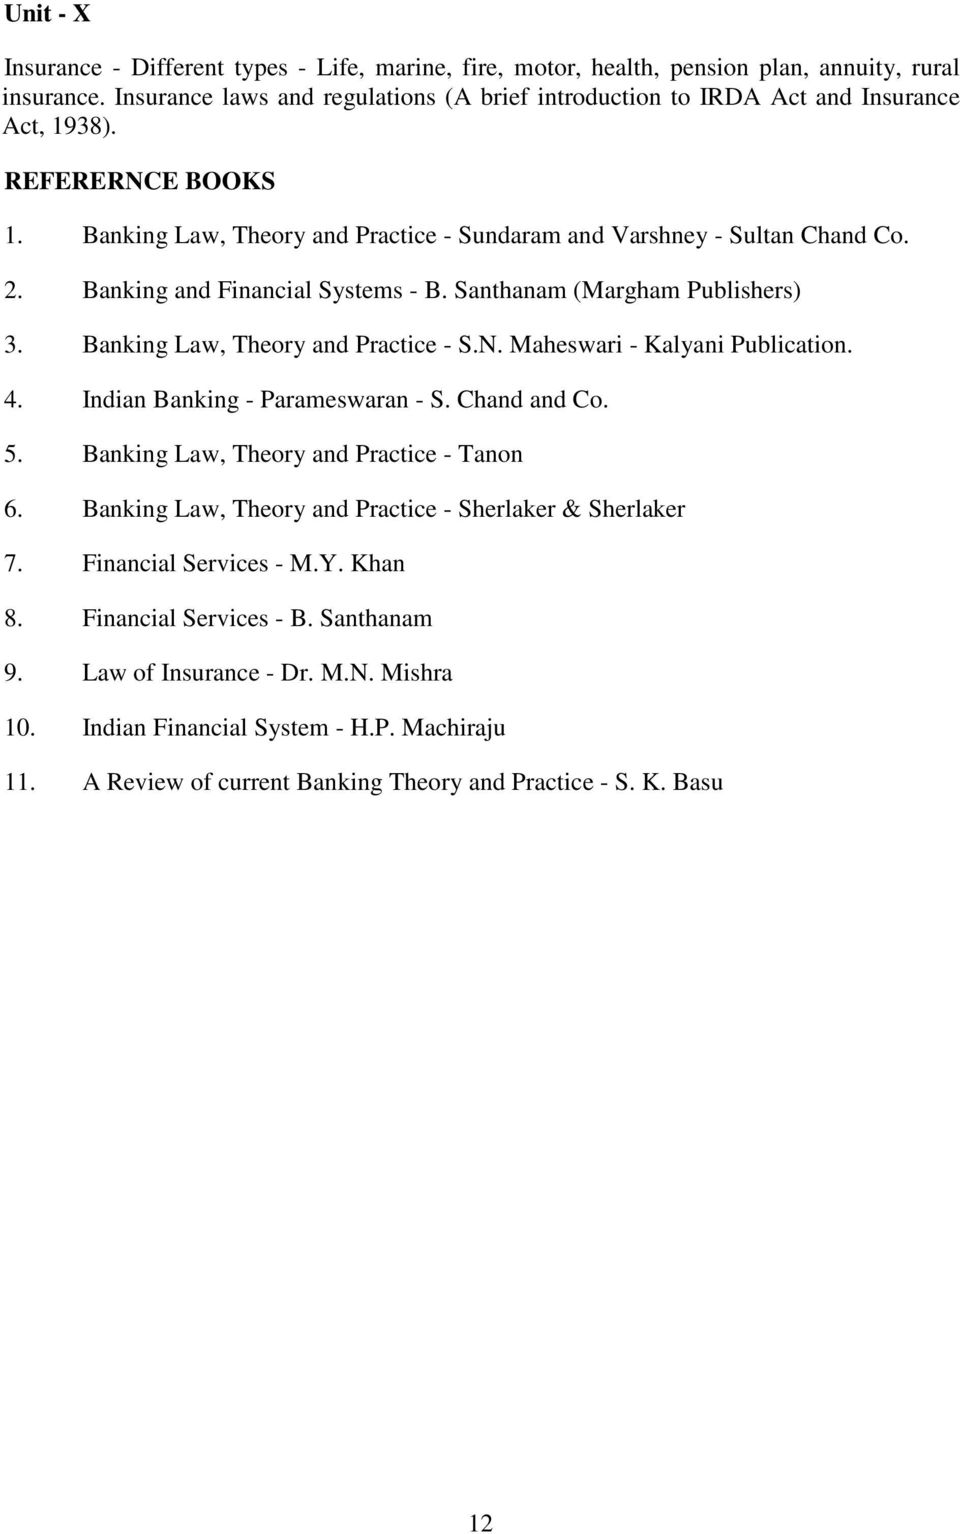 Banking and Financial Systems - B. Santhanam (Margham Publishers) 3. Banking Law, Theory and Practice - S.N. Maheswari - Kalyani Publication. 4. Indian Banking - Parameswaran - S. Chand and Co. 5.